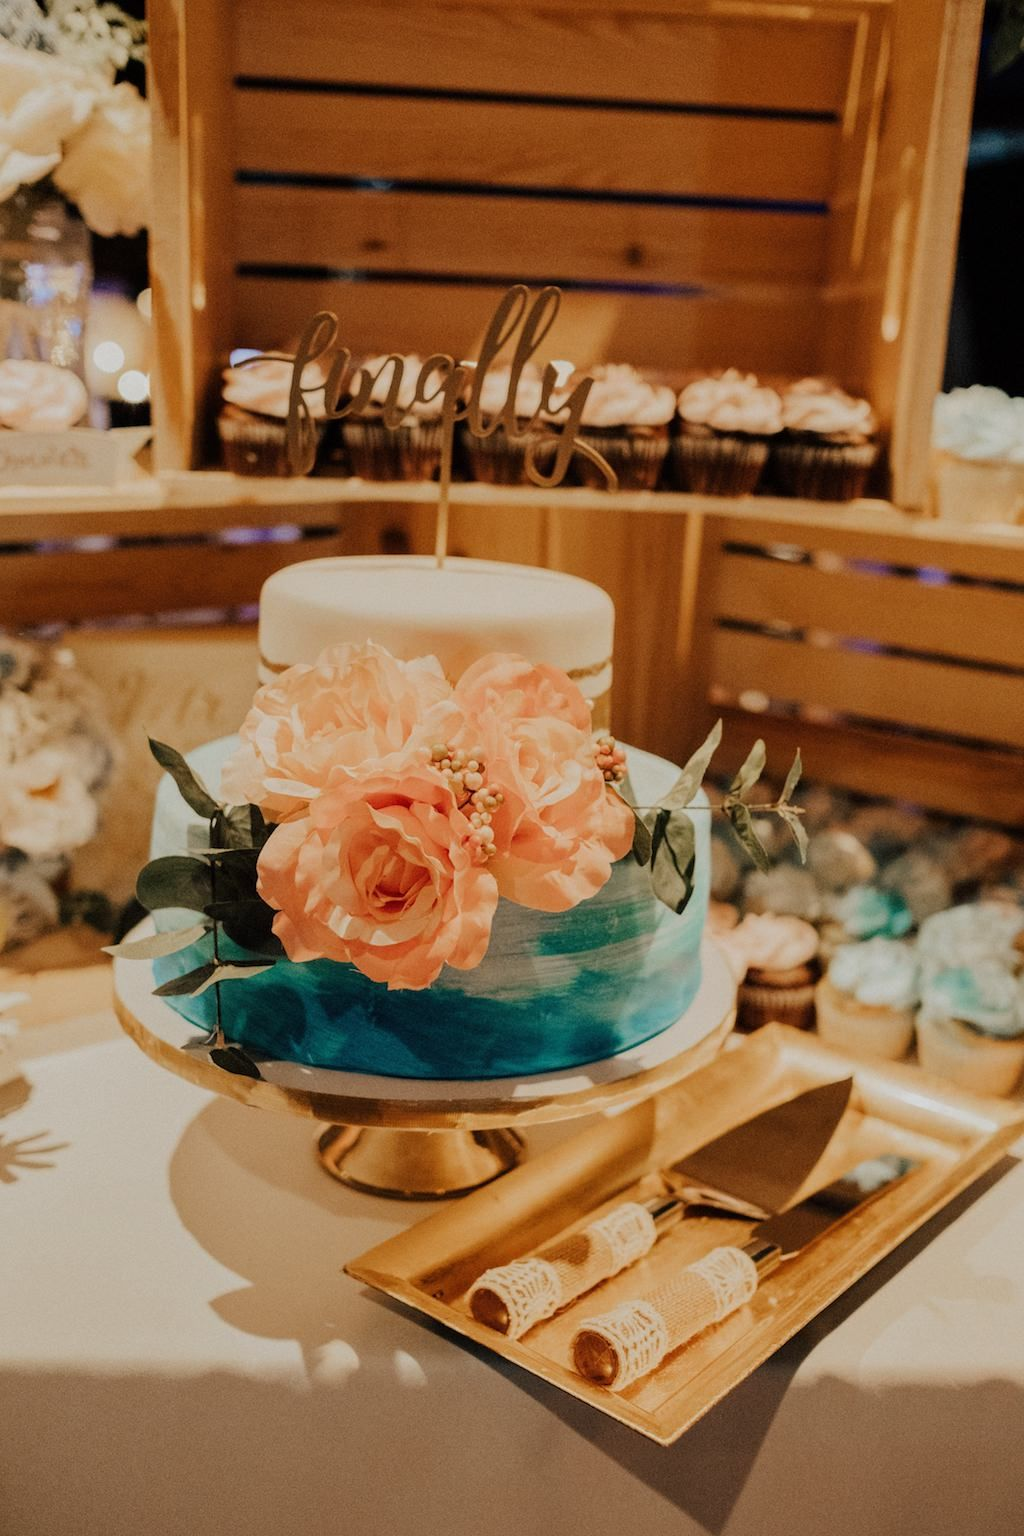 Rustic Modern Wedding Reception at historic DTSP venue NOVA 535 gorgeous Dessert Table with Blue and Pink Floral Round Two Tiered Wedding Cake on Gold Cake Stand and Finally Stylish Gold Cake Topper with Rustic Wooden Crates and Cupcakes | pink boho chic